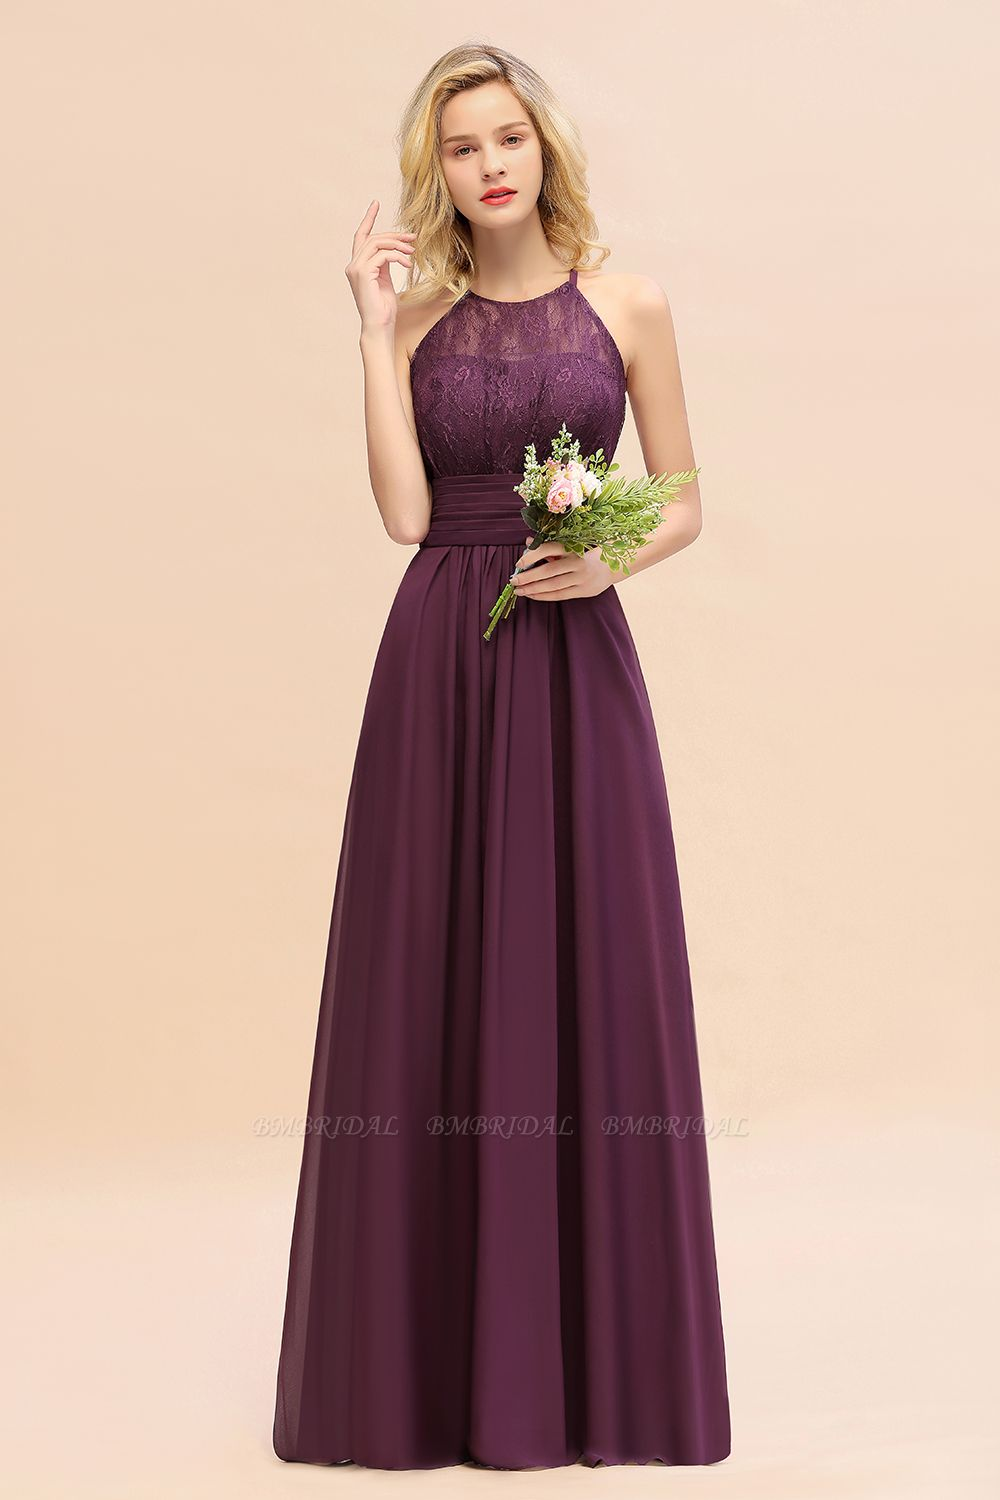 BMbridal Has Just Released A Great Range Of Affordable Bridesmaid Dresses